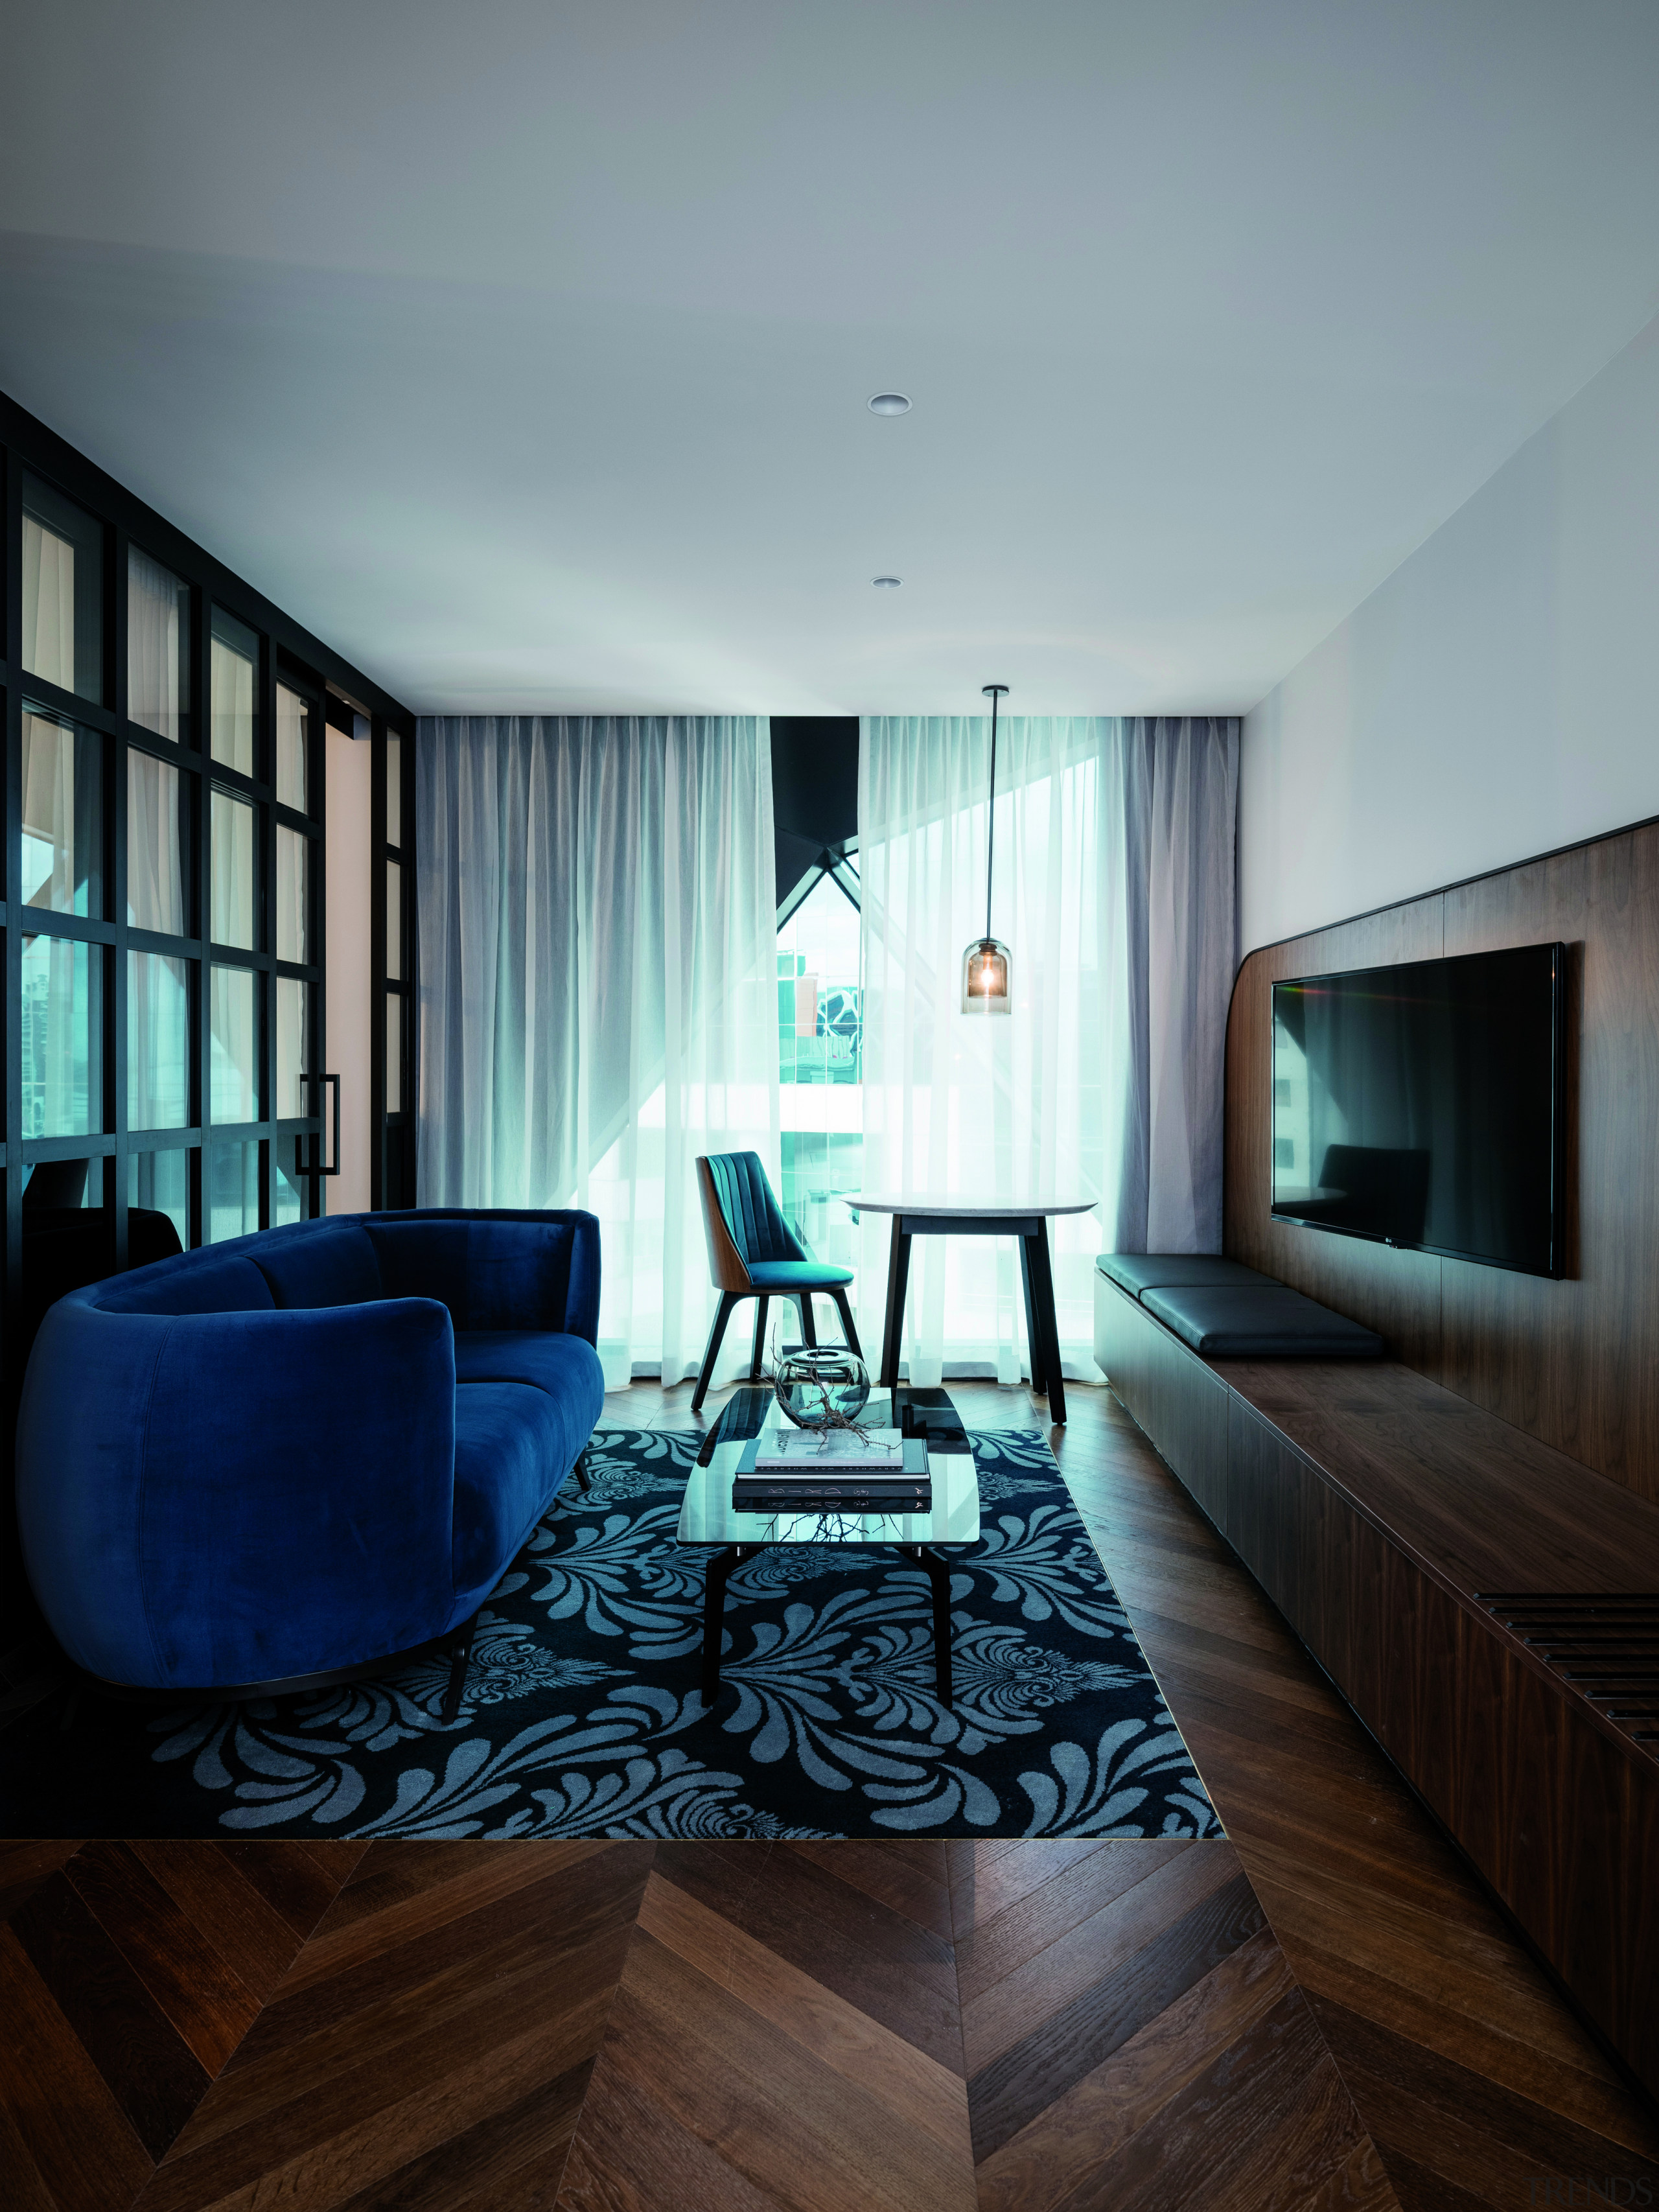 Suites at West Hotel, Sydney, are finished with architecture, ceiling, daylighting, floor, house, interior design, living room, room, table, gray, black